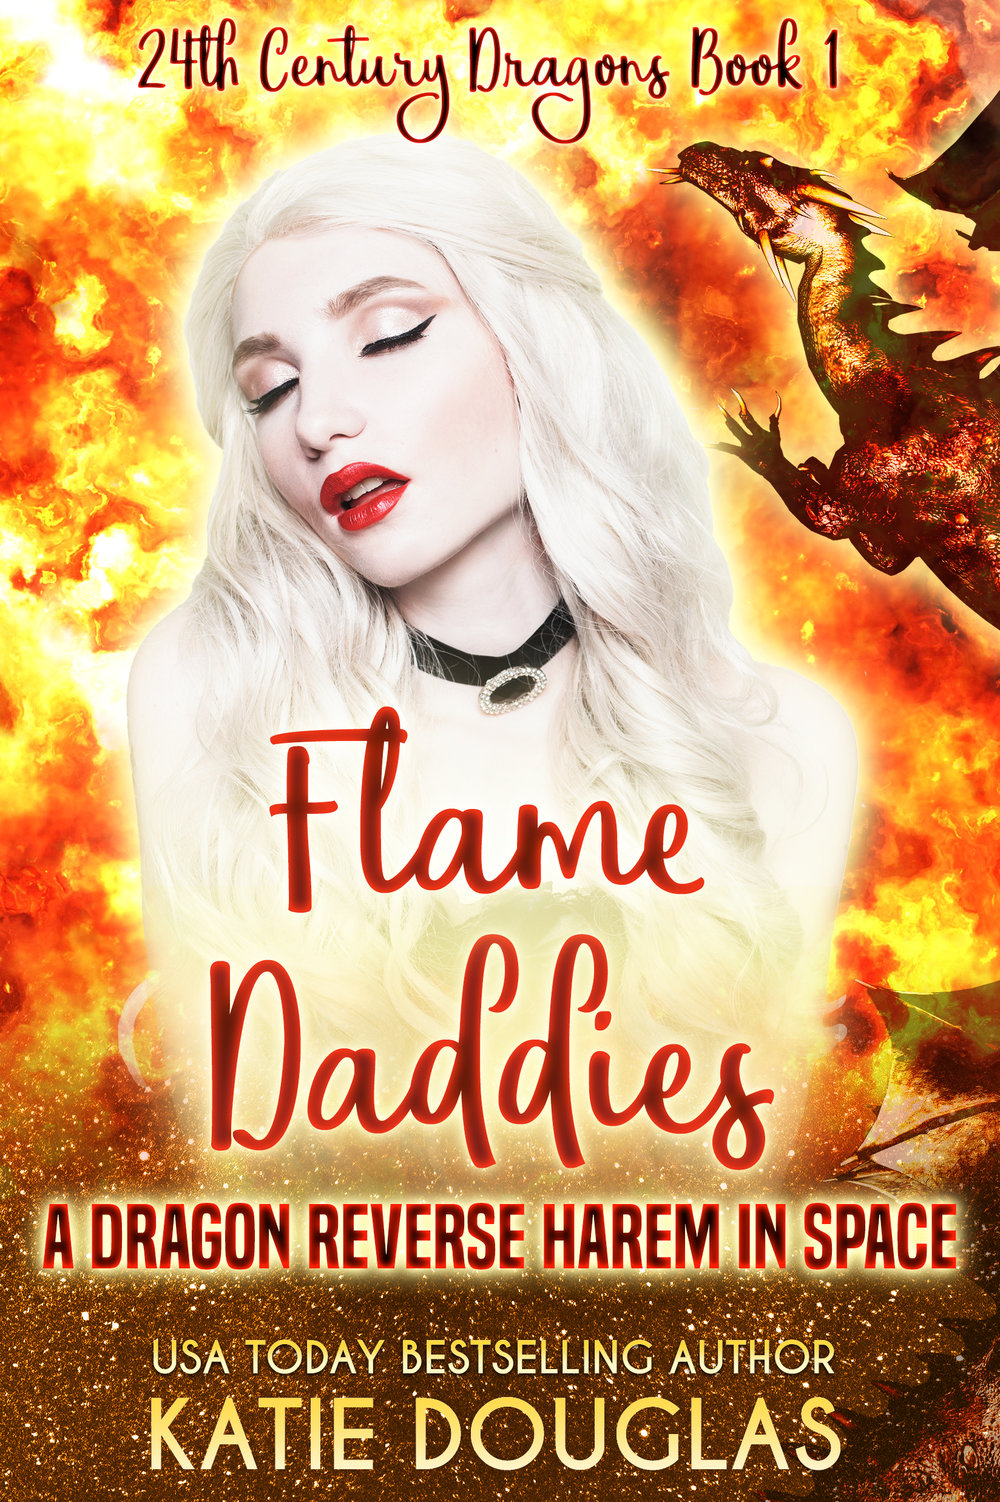 flame daddies COVER FINAL.jpg